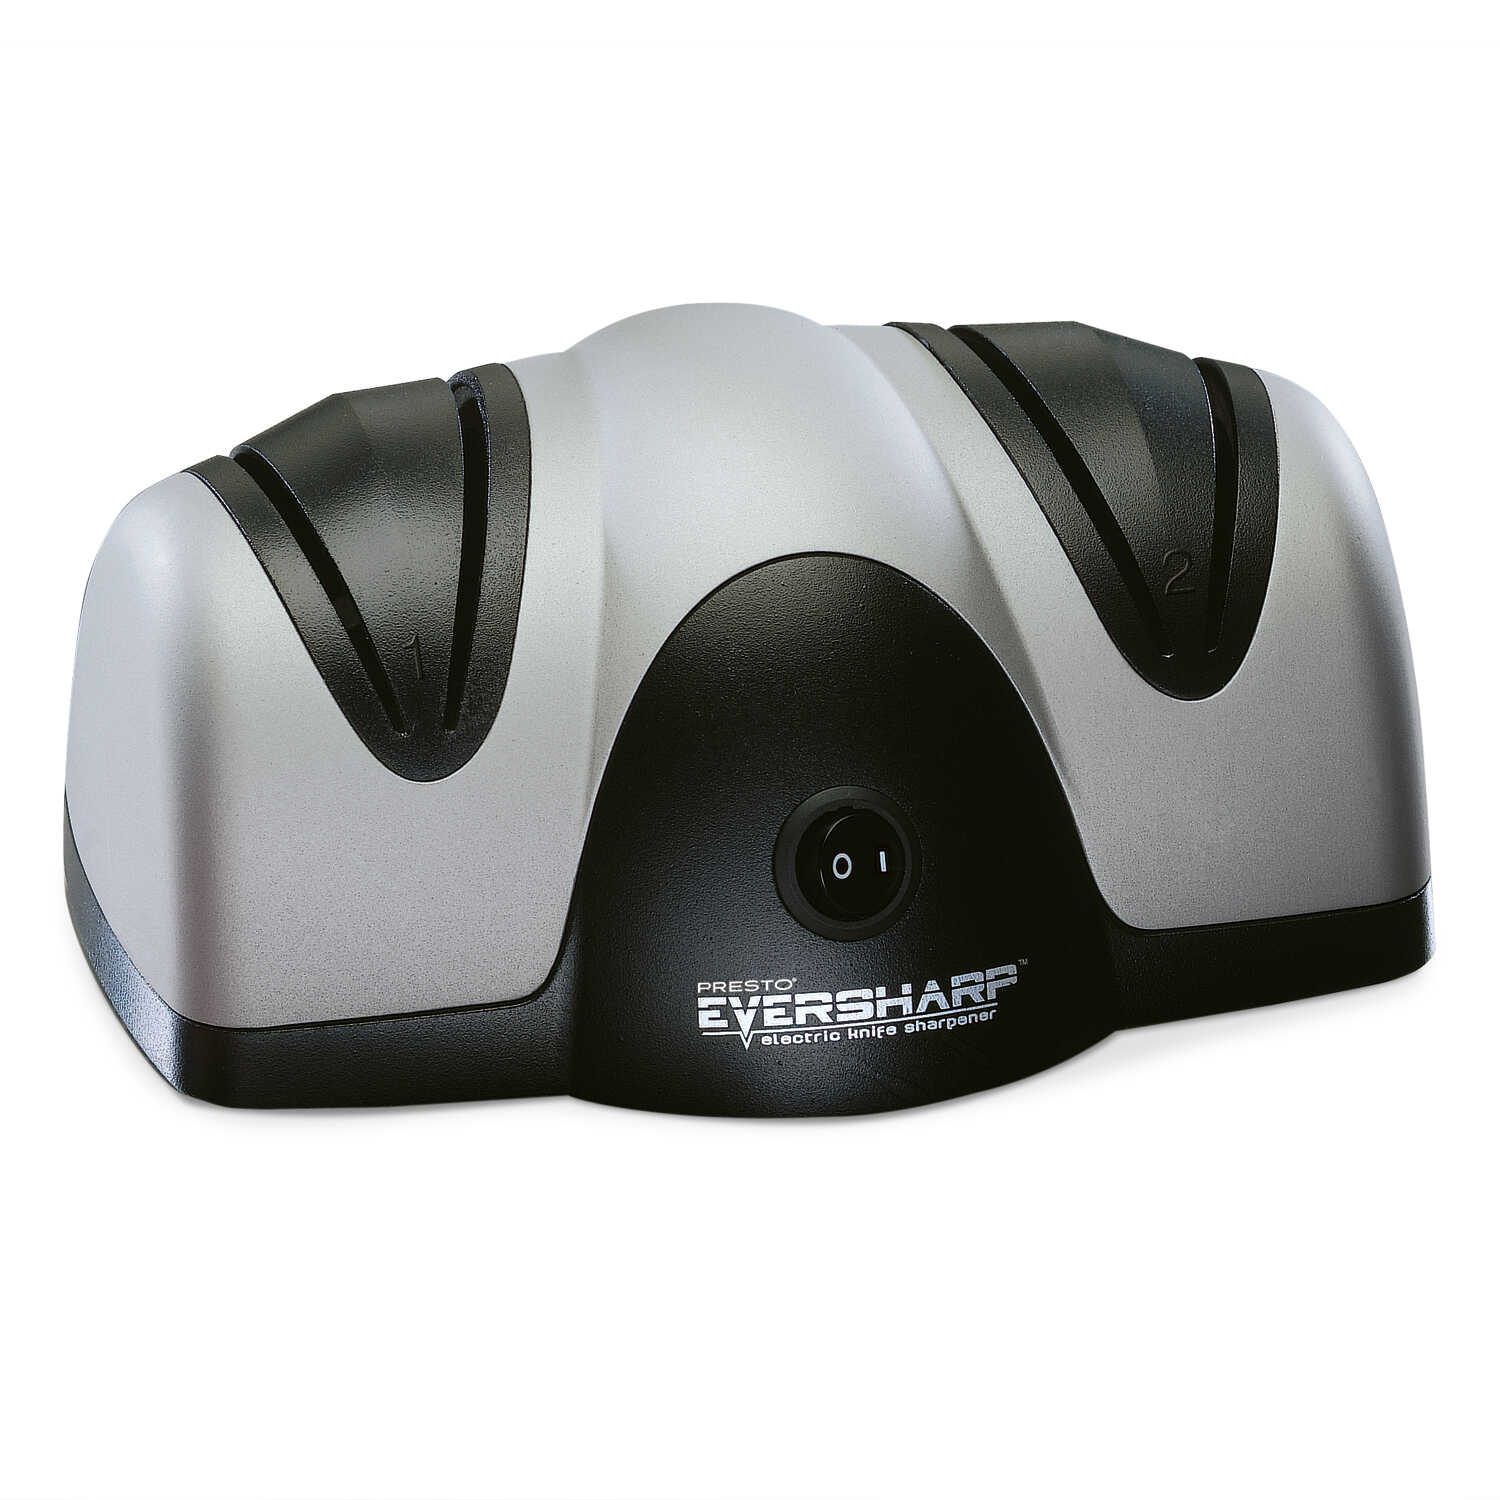 Presto  Eversharp  Matte  Plastic  2  Knife Sharpener  Multicolored